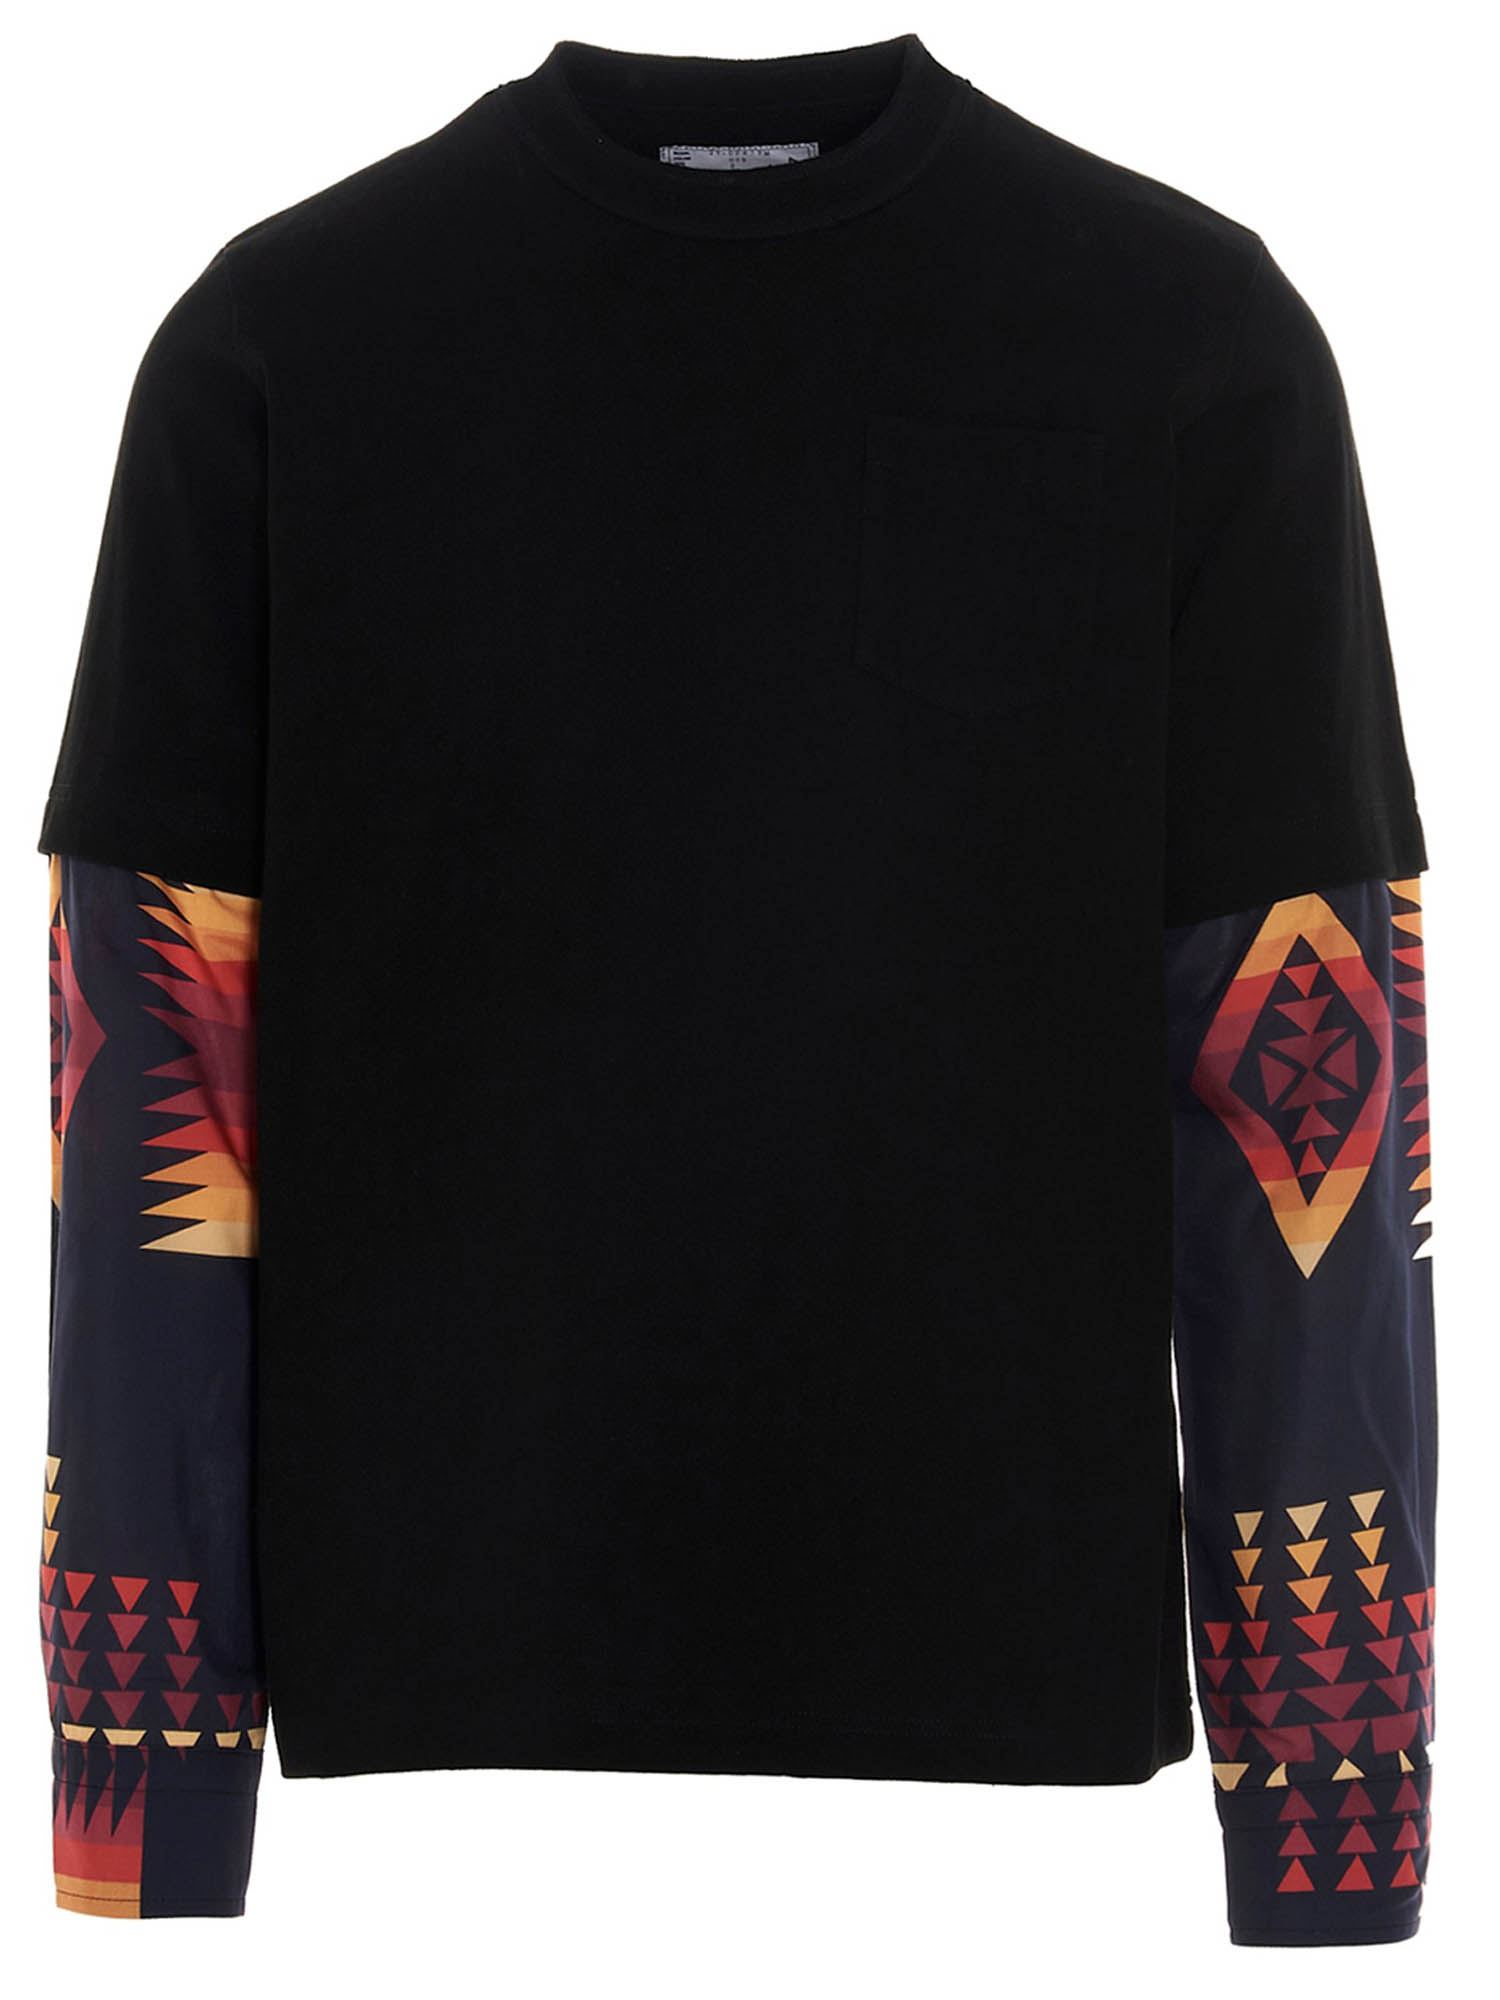 Sacai MULTICOLOR INSERTS T-SHIRT IN BLACK